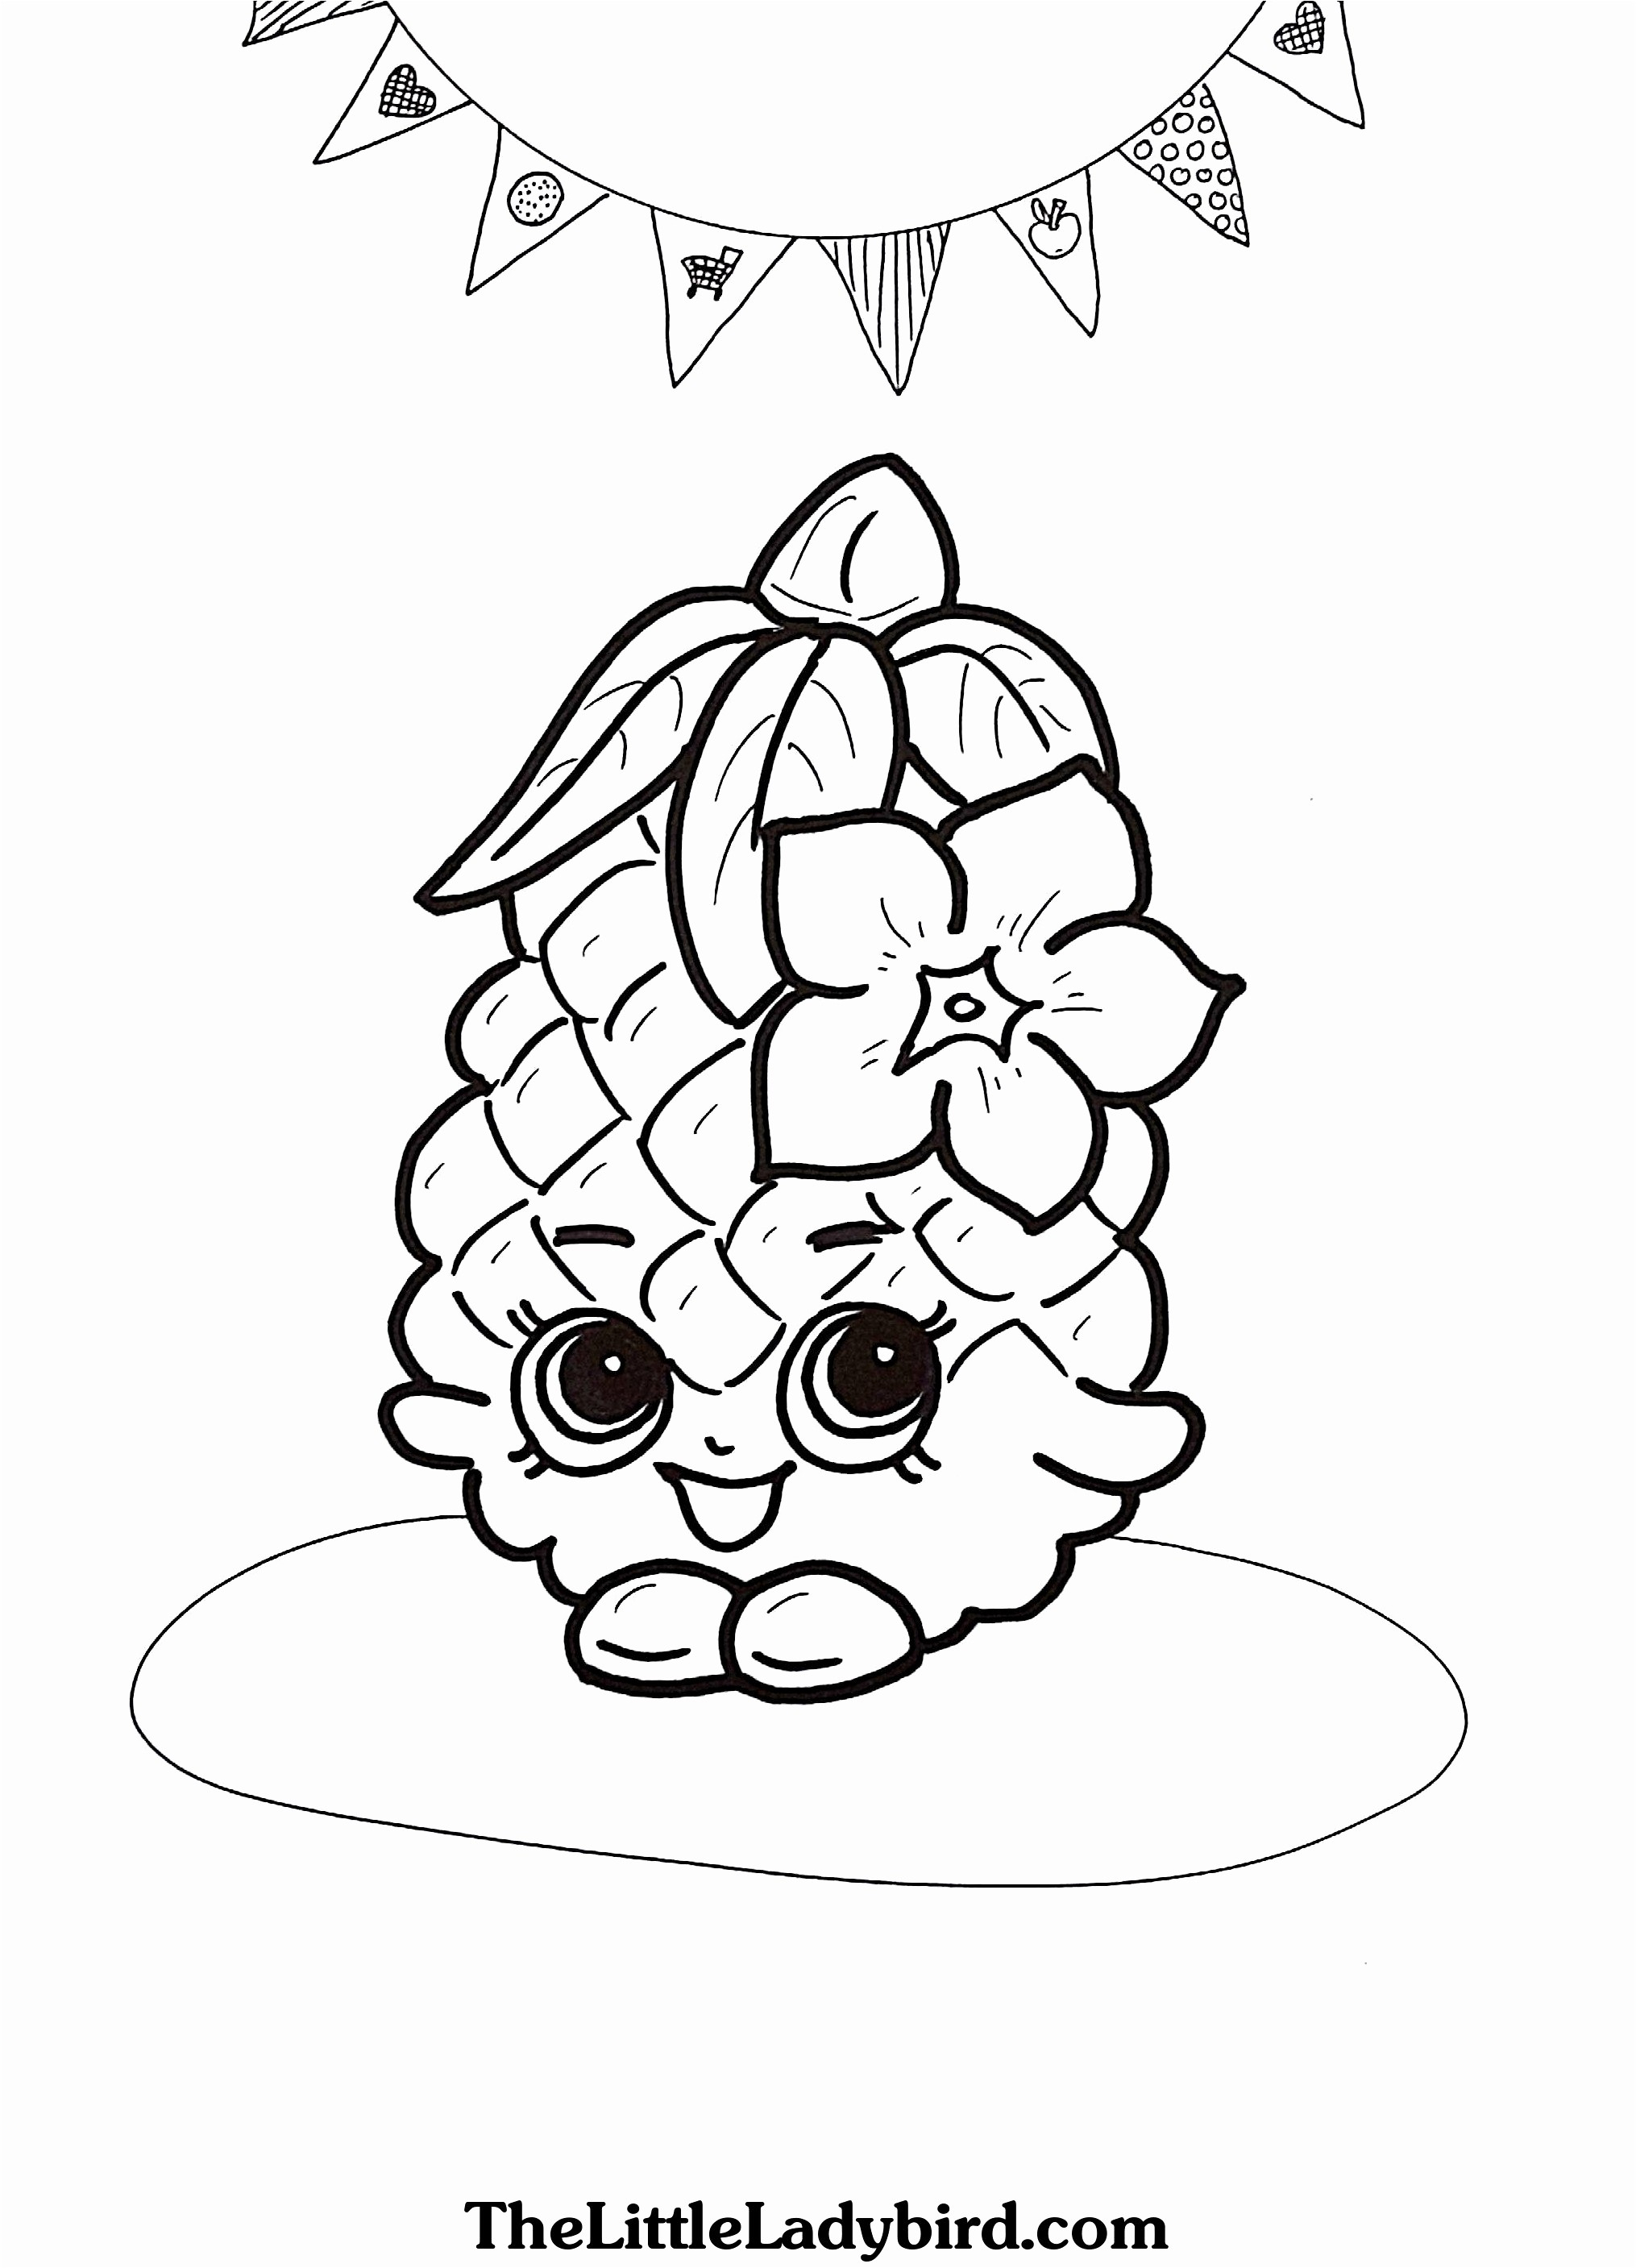 free coloring pages nickelodeon Collection-nick coloring pages 16p book coloring page awesome picture coloring line elegant color sheet 0d se telefony info se 1-n